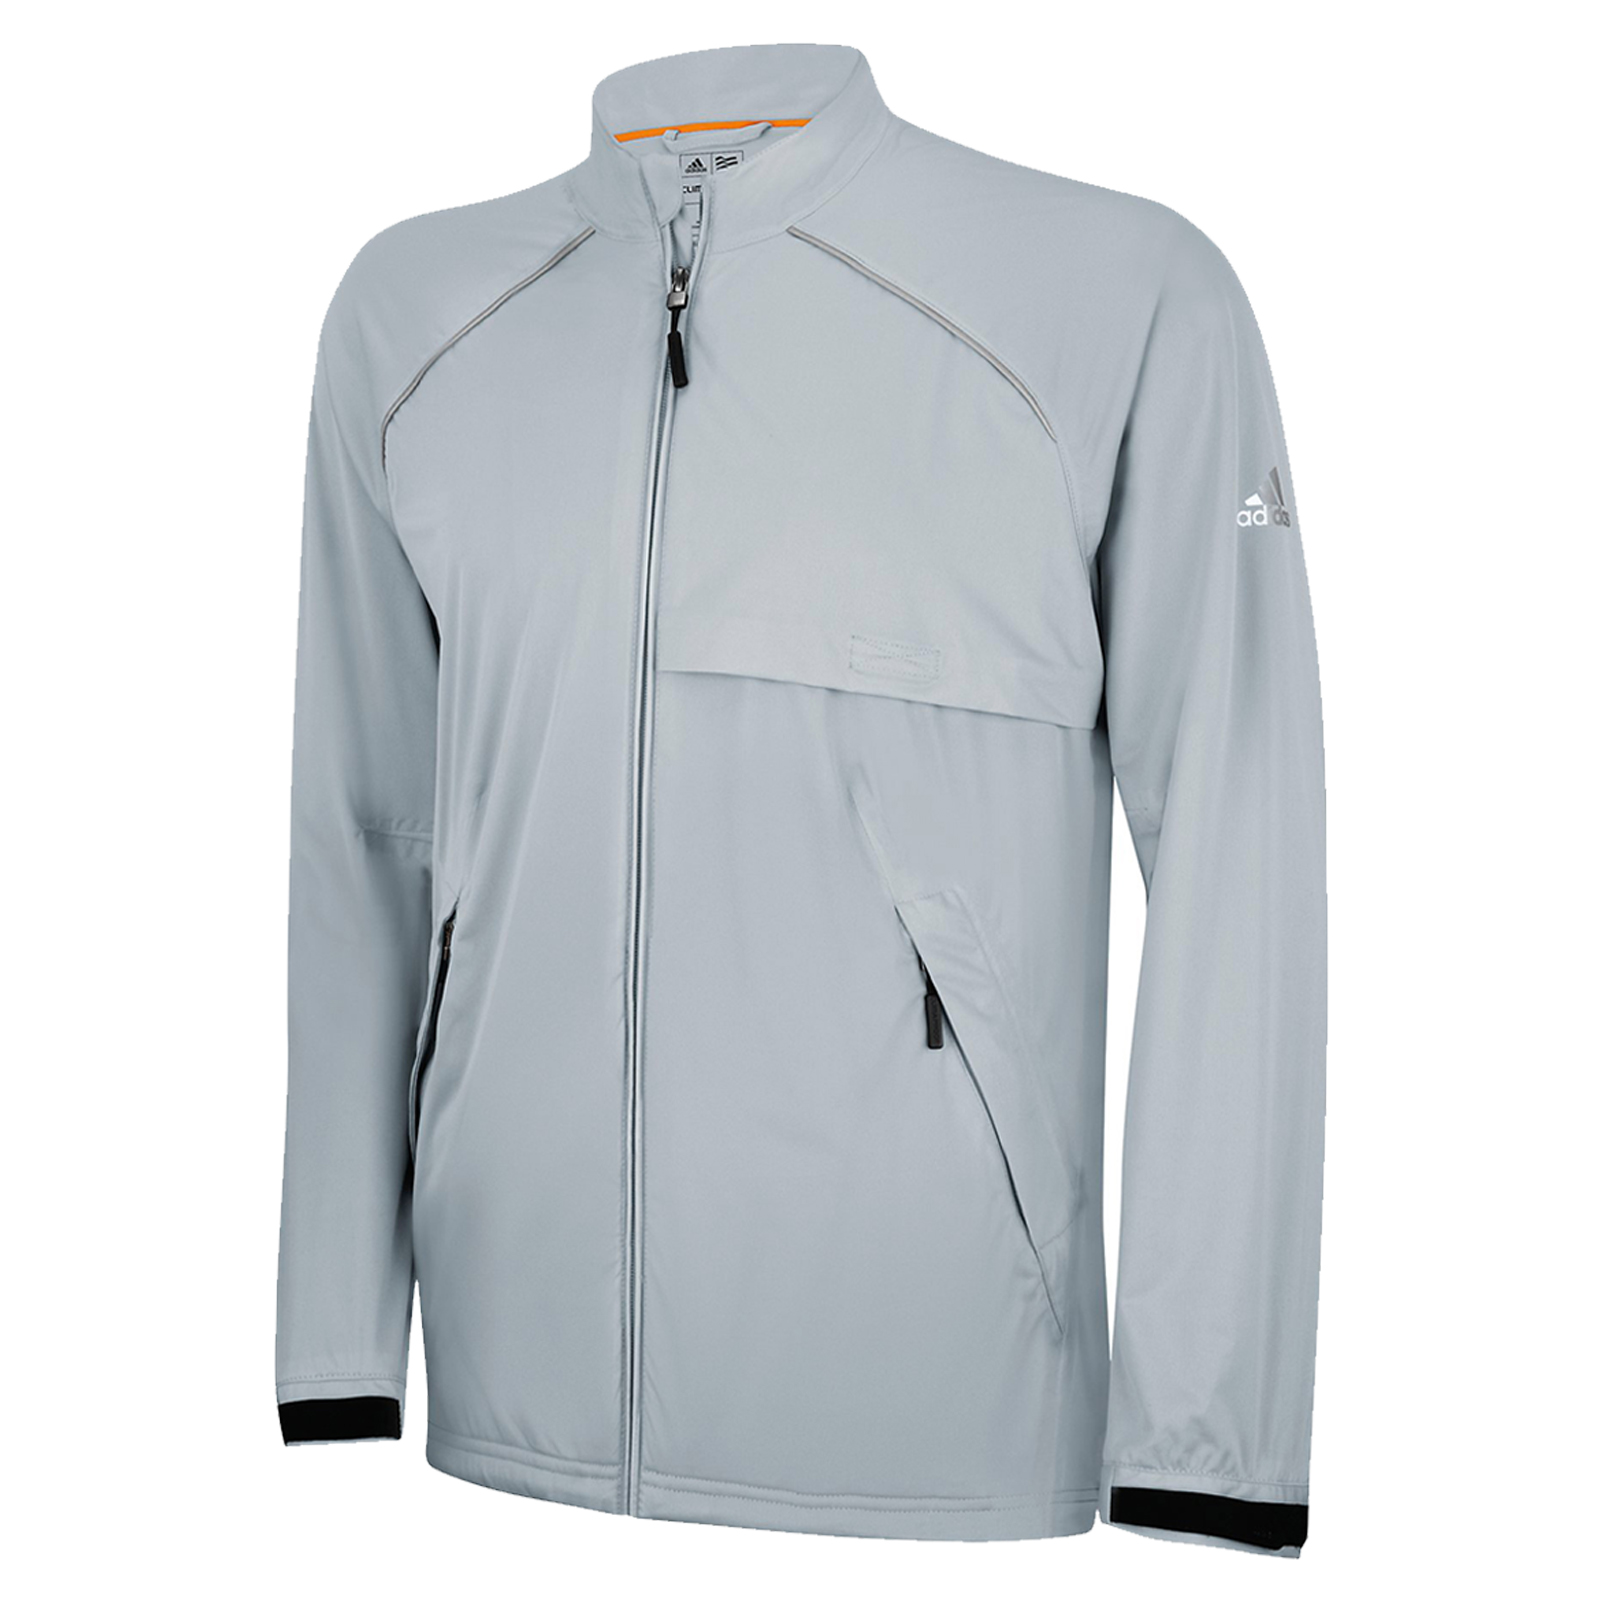 Adidas mens climaproof storm soft shell rain jacket xl for Adidas golf rain shirt